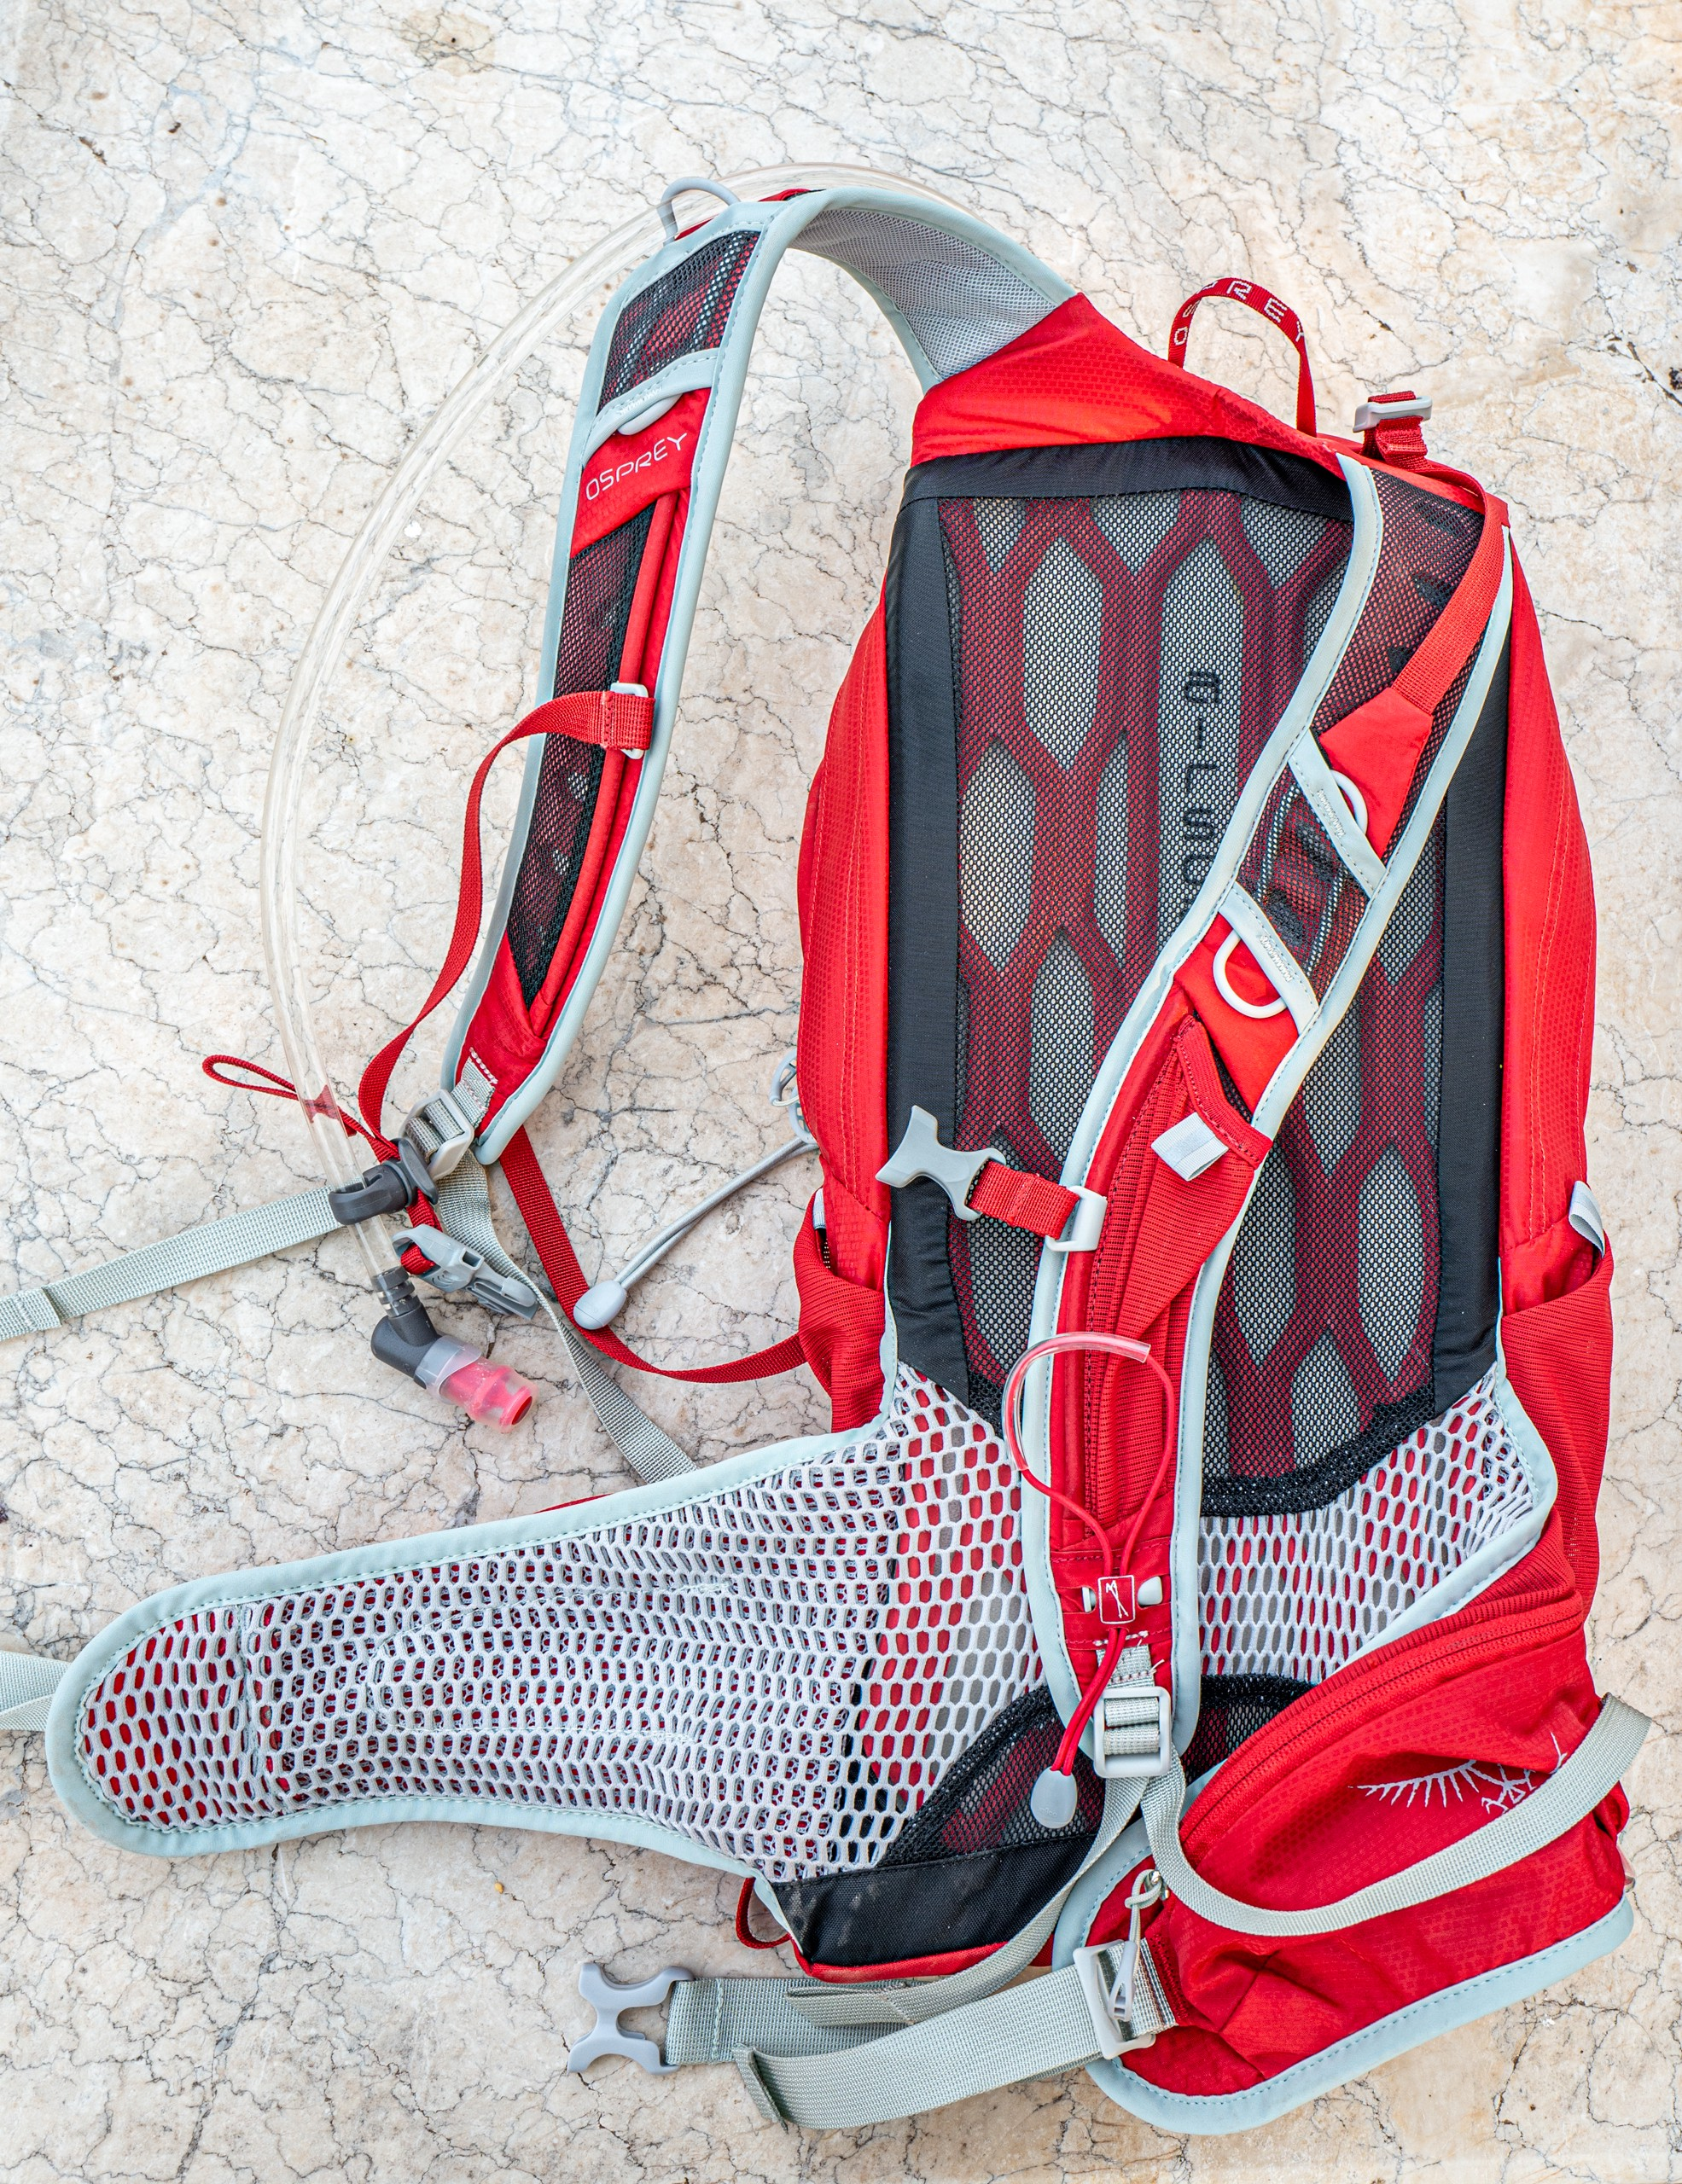 Front of pack, showing plastic mesh frame, shoulder straps and waist belt.